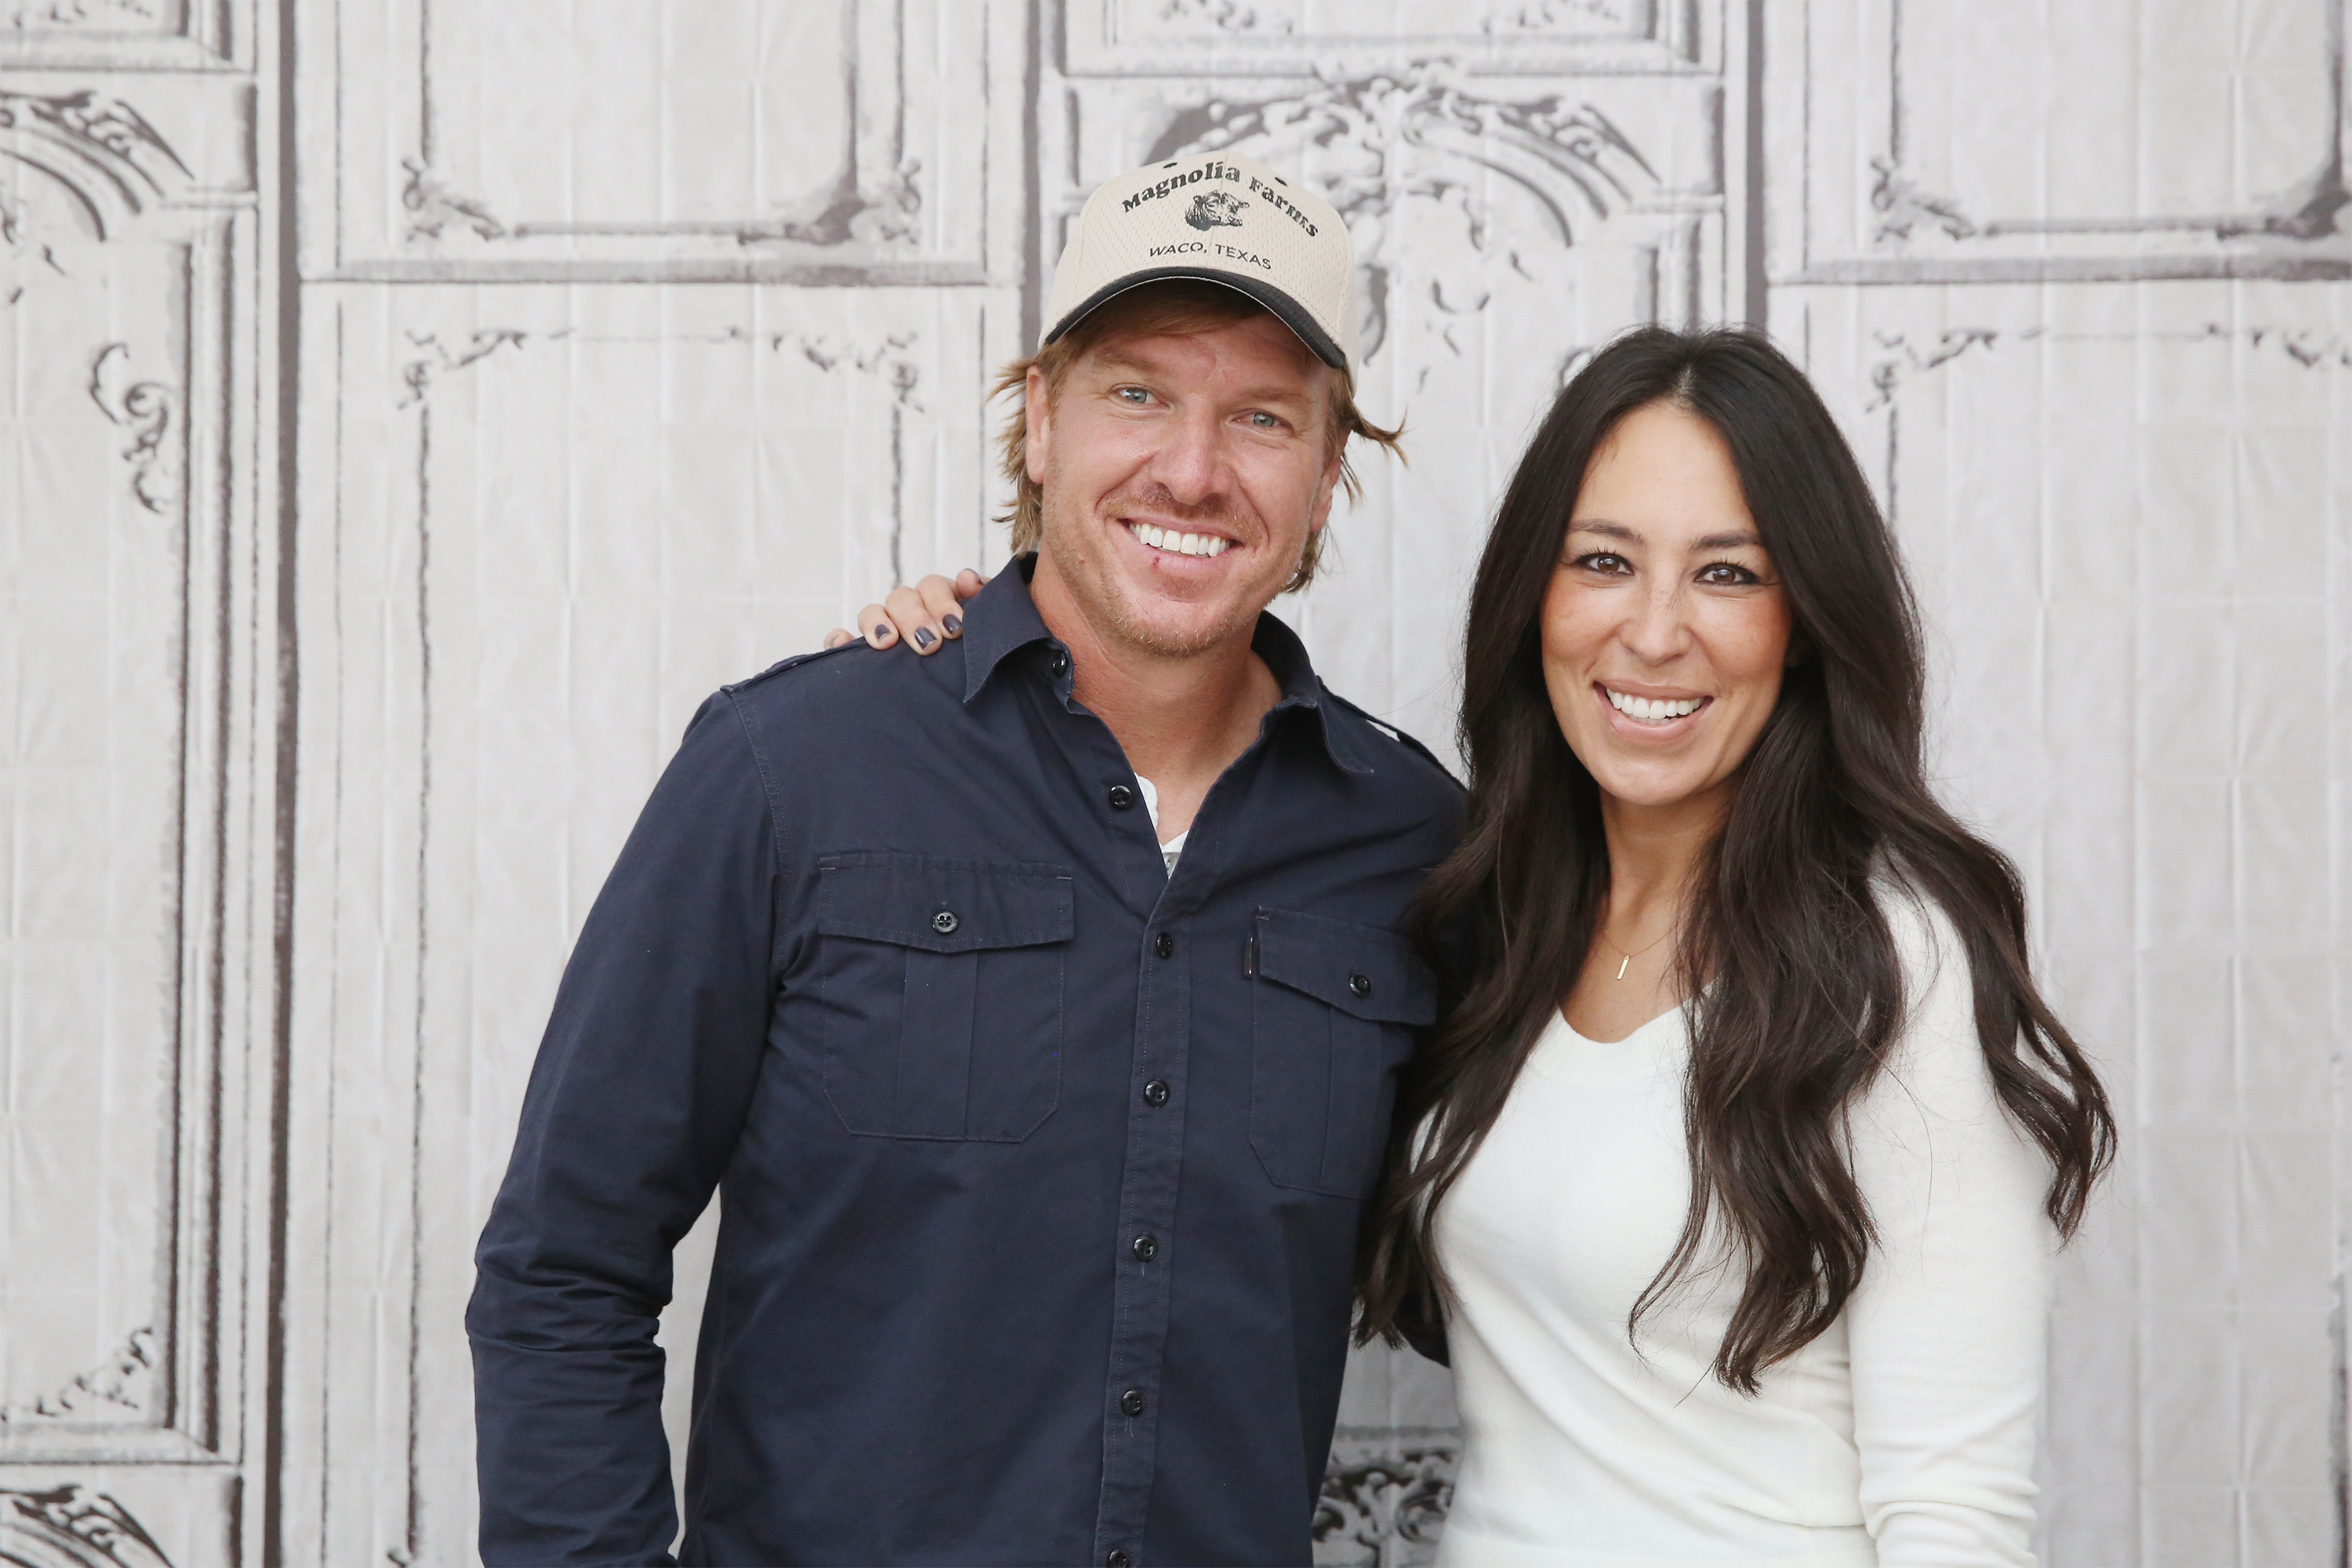 Chips Et Joanna Gaines chip and joanna gaines announce new tv show